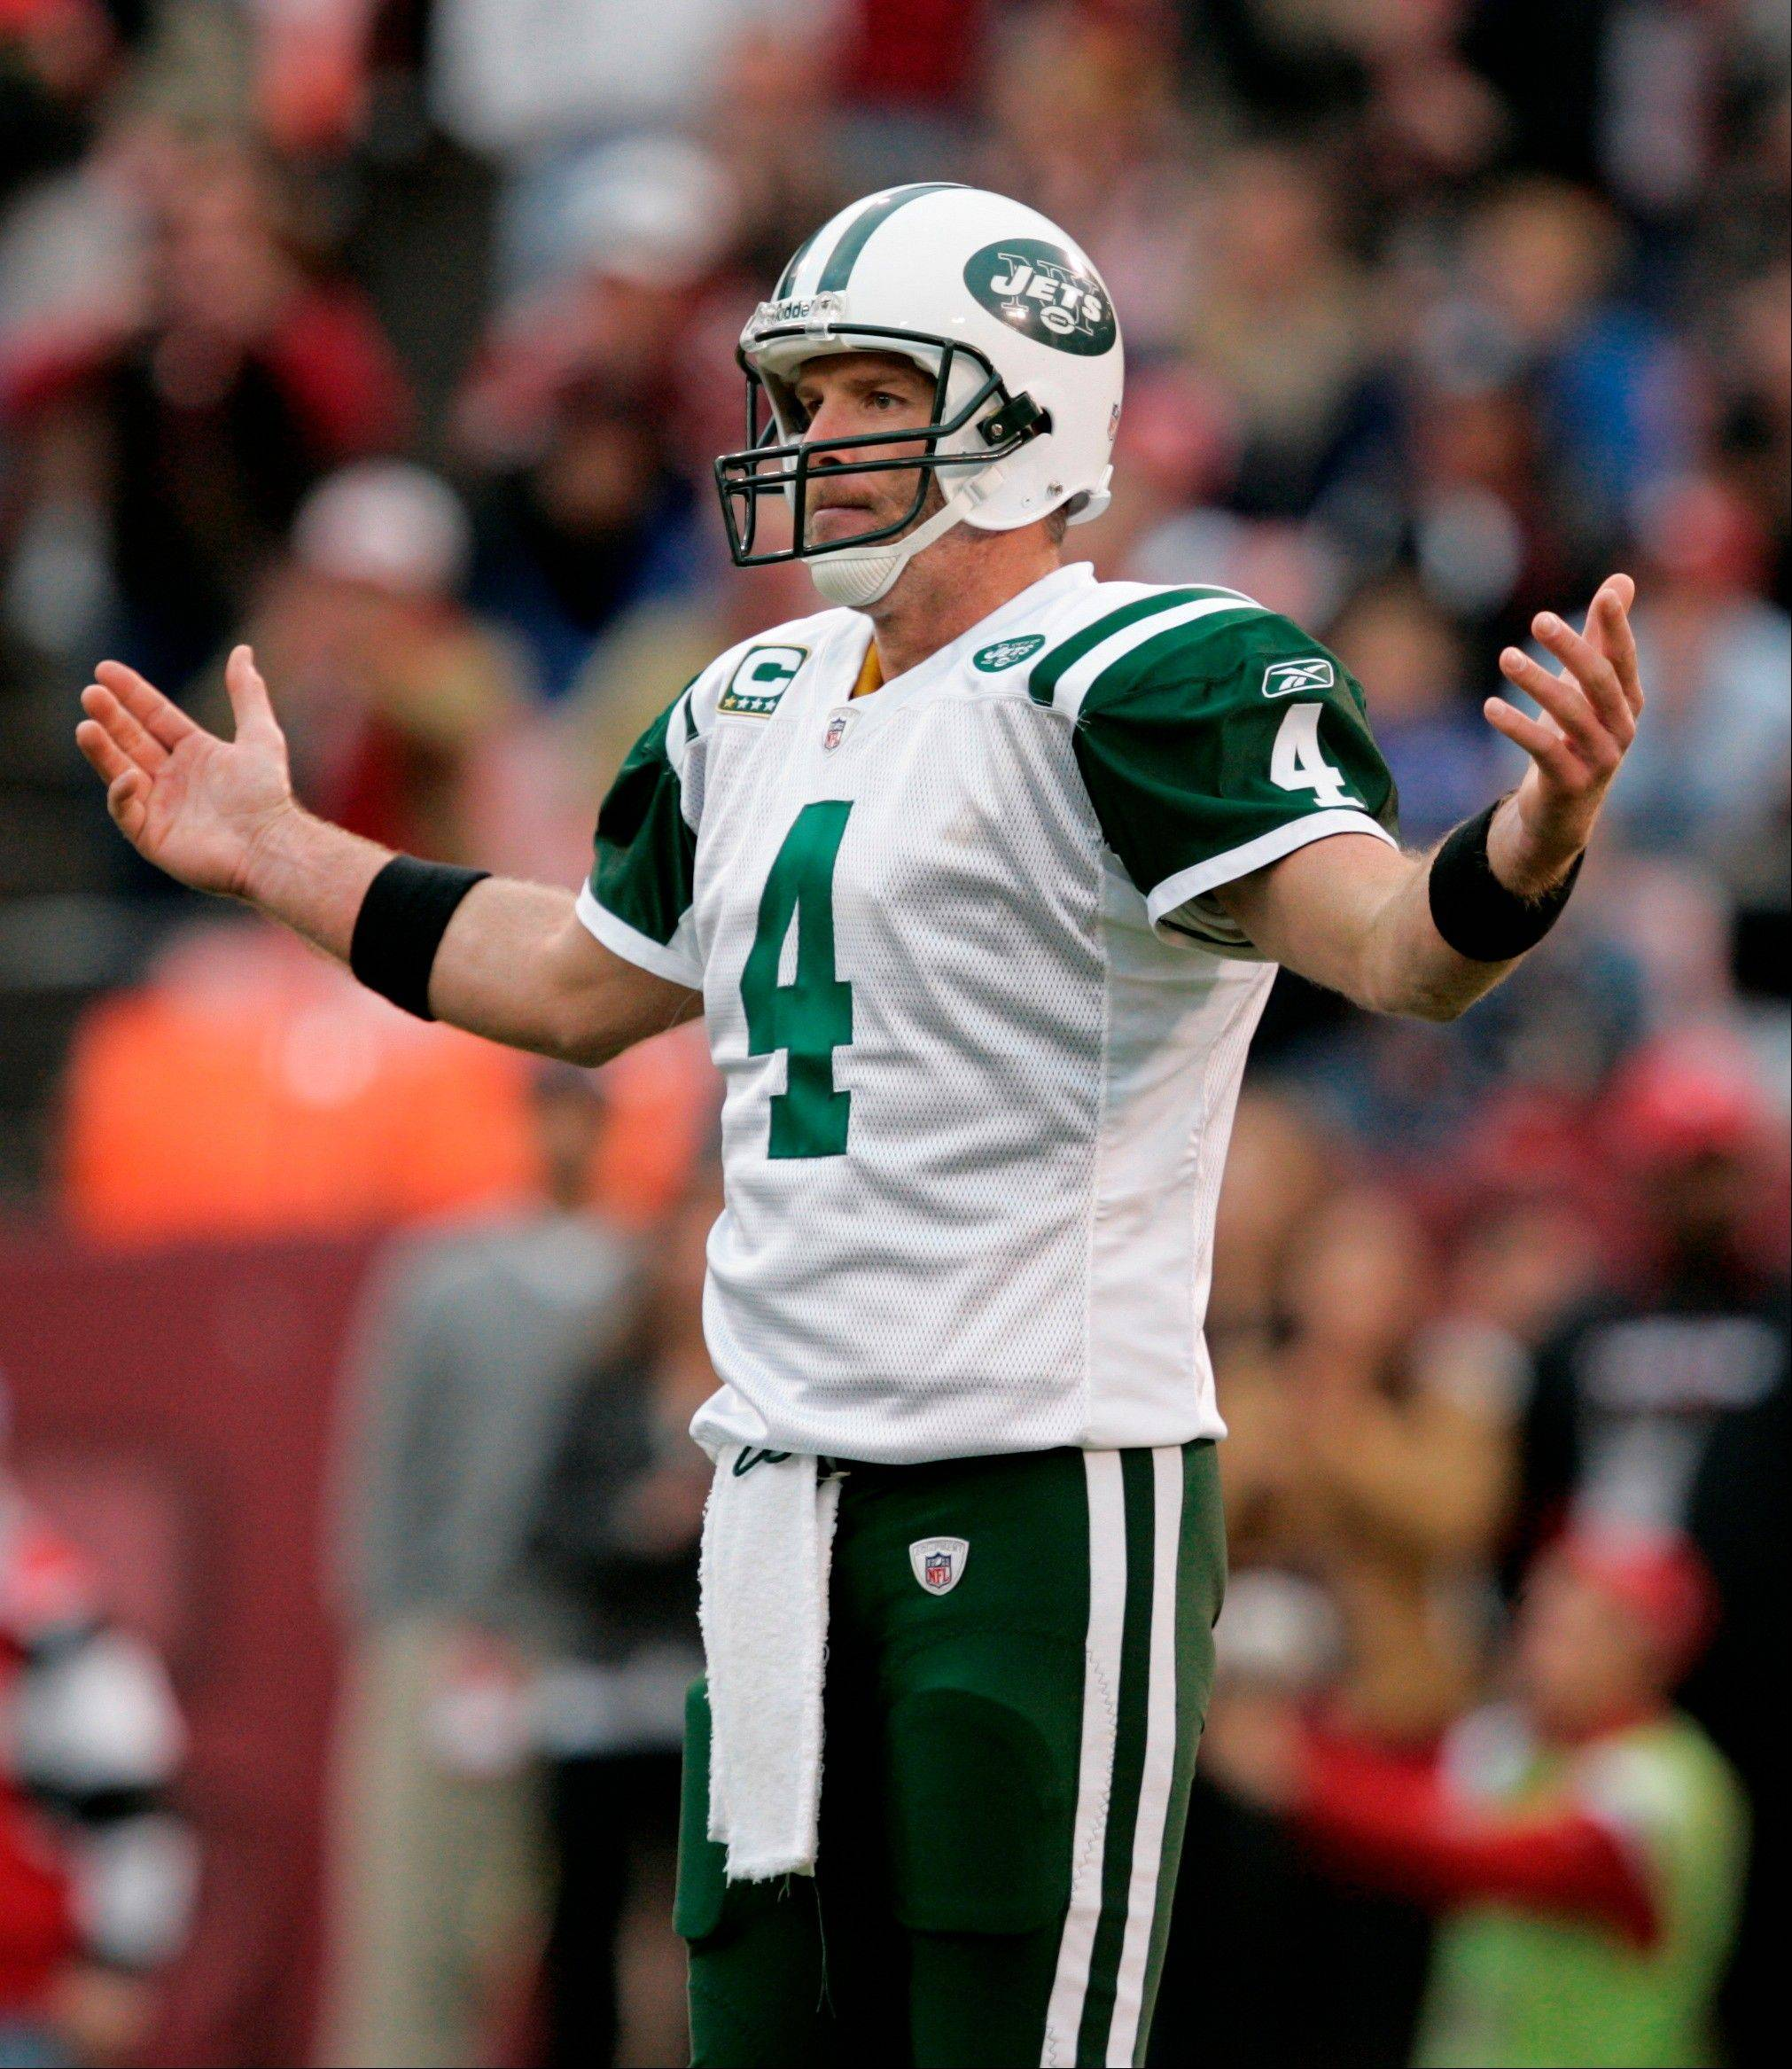 FILE - In this Dec. 7, 2008, file photo, New York Jets quarterback Brett Favre reacts to a missed pass during the second half on an NFL football game against the San Fransisco 49ers in San Francisco. A lawsuit filed by two massage therapists who sued retired NFL quarterback Brett Favre over claims he sent racy text messages has been settled, a lawyer for the women said Friday, May 24, 2013.